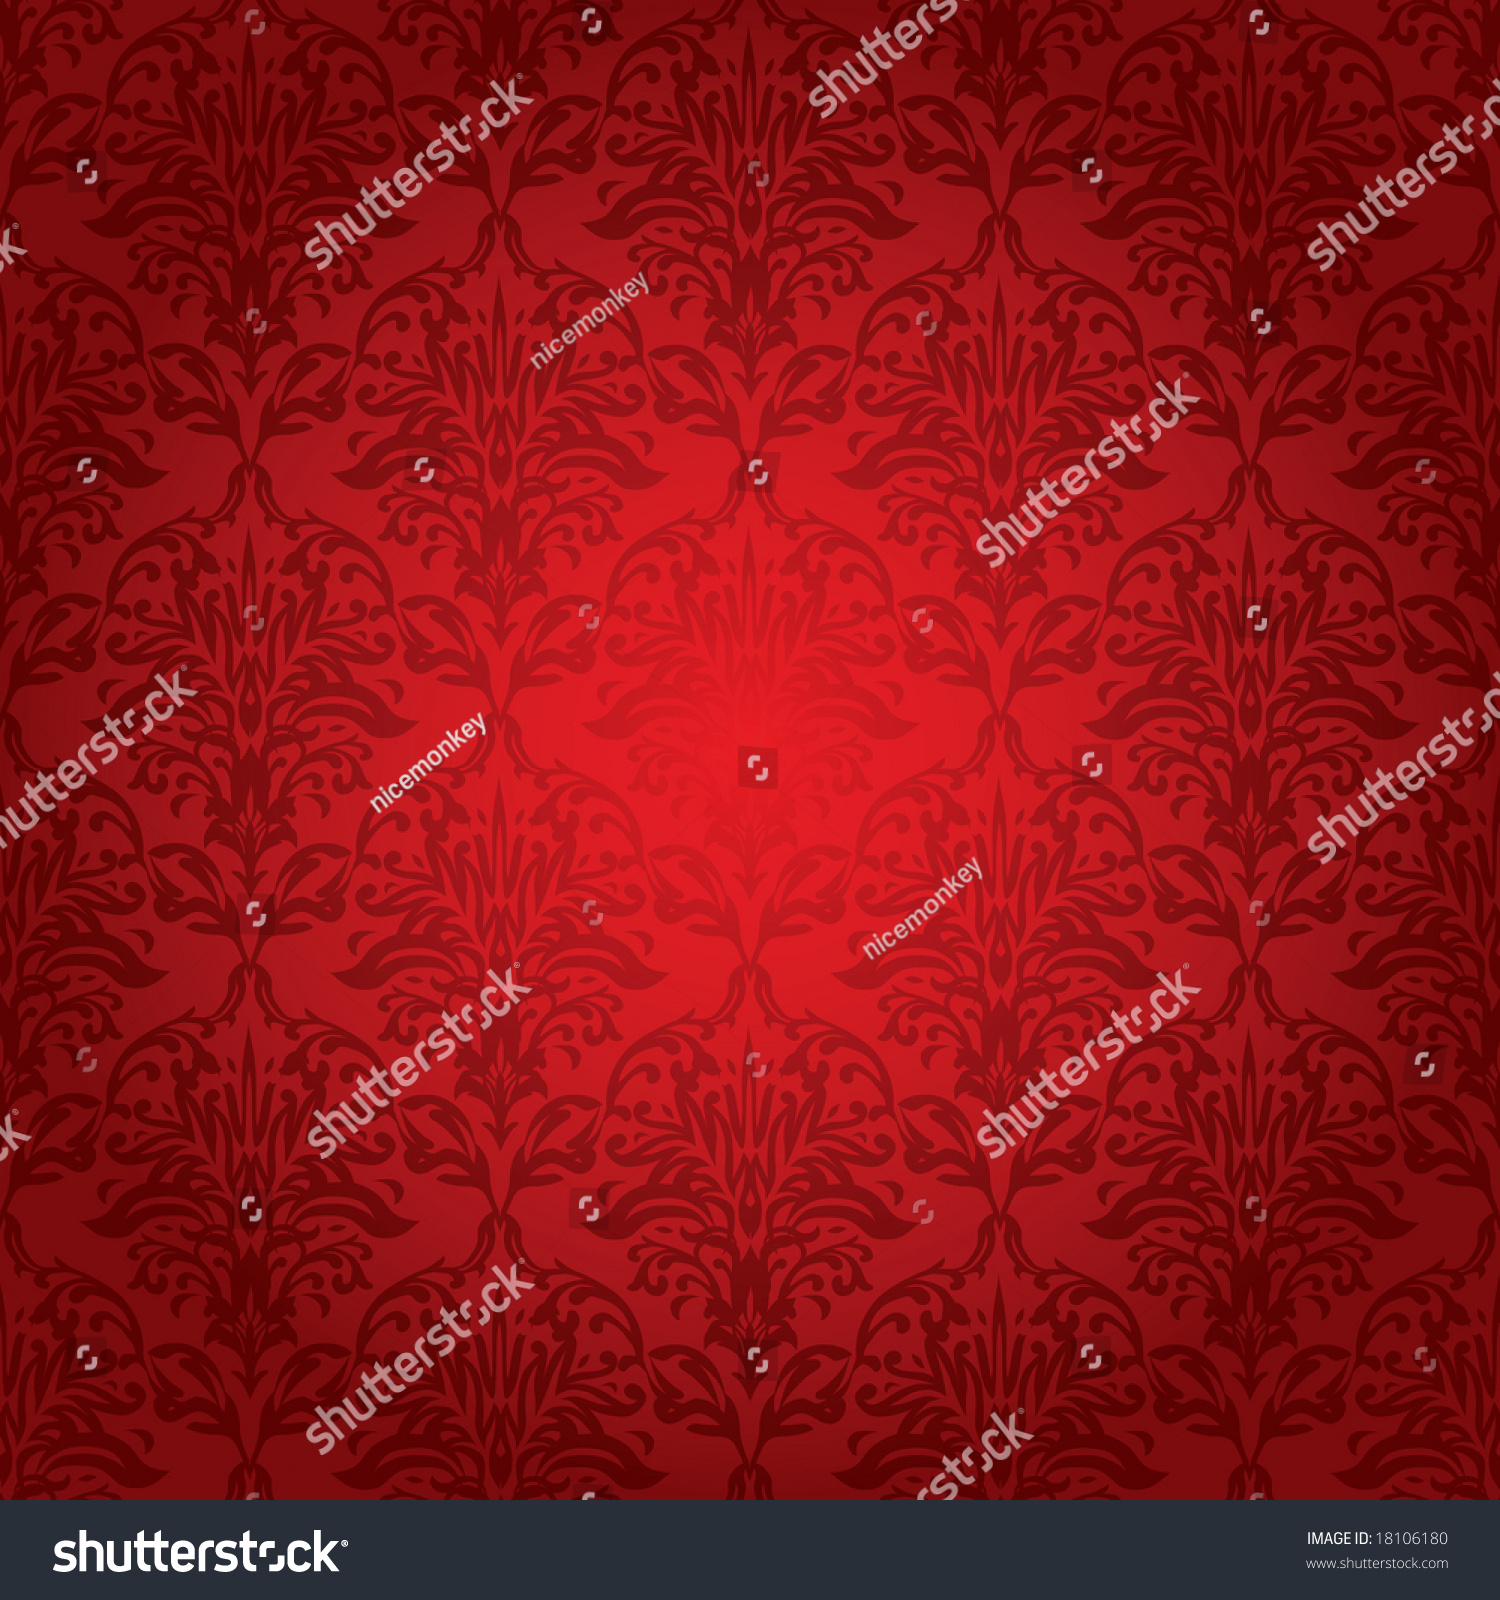 Different Shades Of Red Different Shades Red Repeating Design Makes Stock Vector 18106180